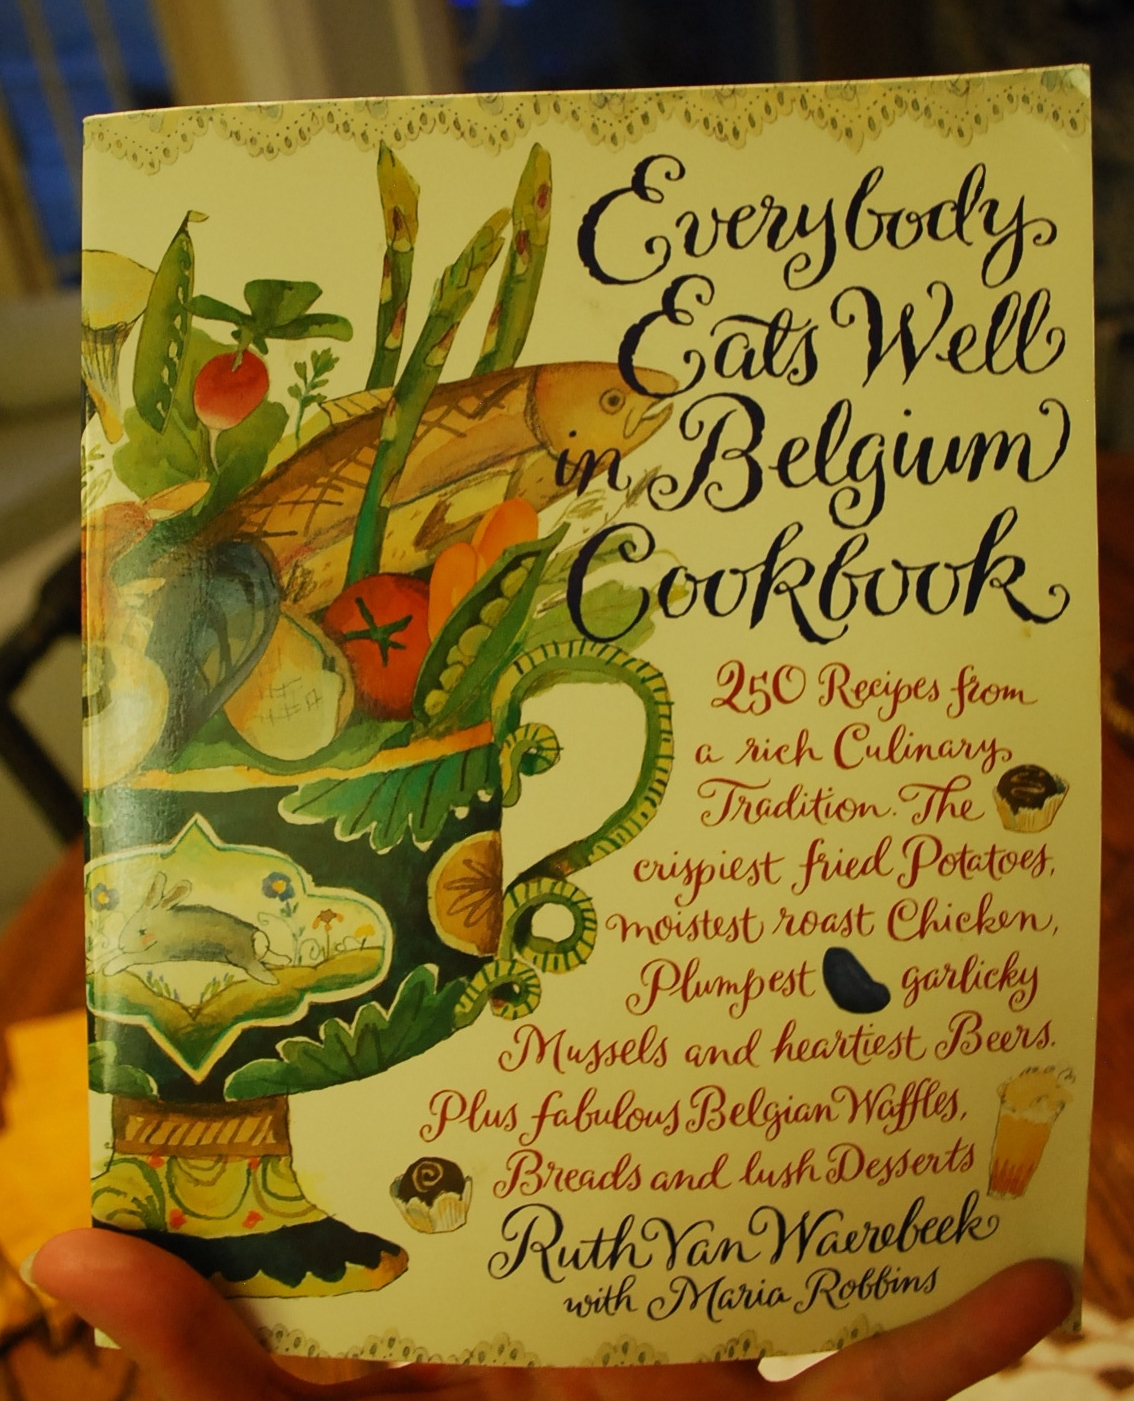 Everybody Eats Well in Belgium - This cookbook is pretty magical. Not only does it have delicious recipes, but Ruth Can Waerebeek offers great anecdotes and stories about tradition, history, and cooking tips that are interesting and at times invaluable. I highly recommend it! Or you can check out her newer cookbook The Taste of Belgium which I am thinking about exploring myself, as it is filled with beautiful pictures and new stories too!